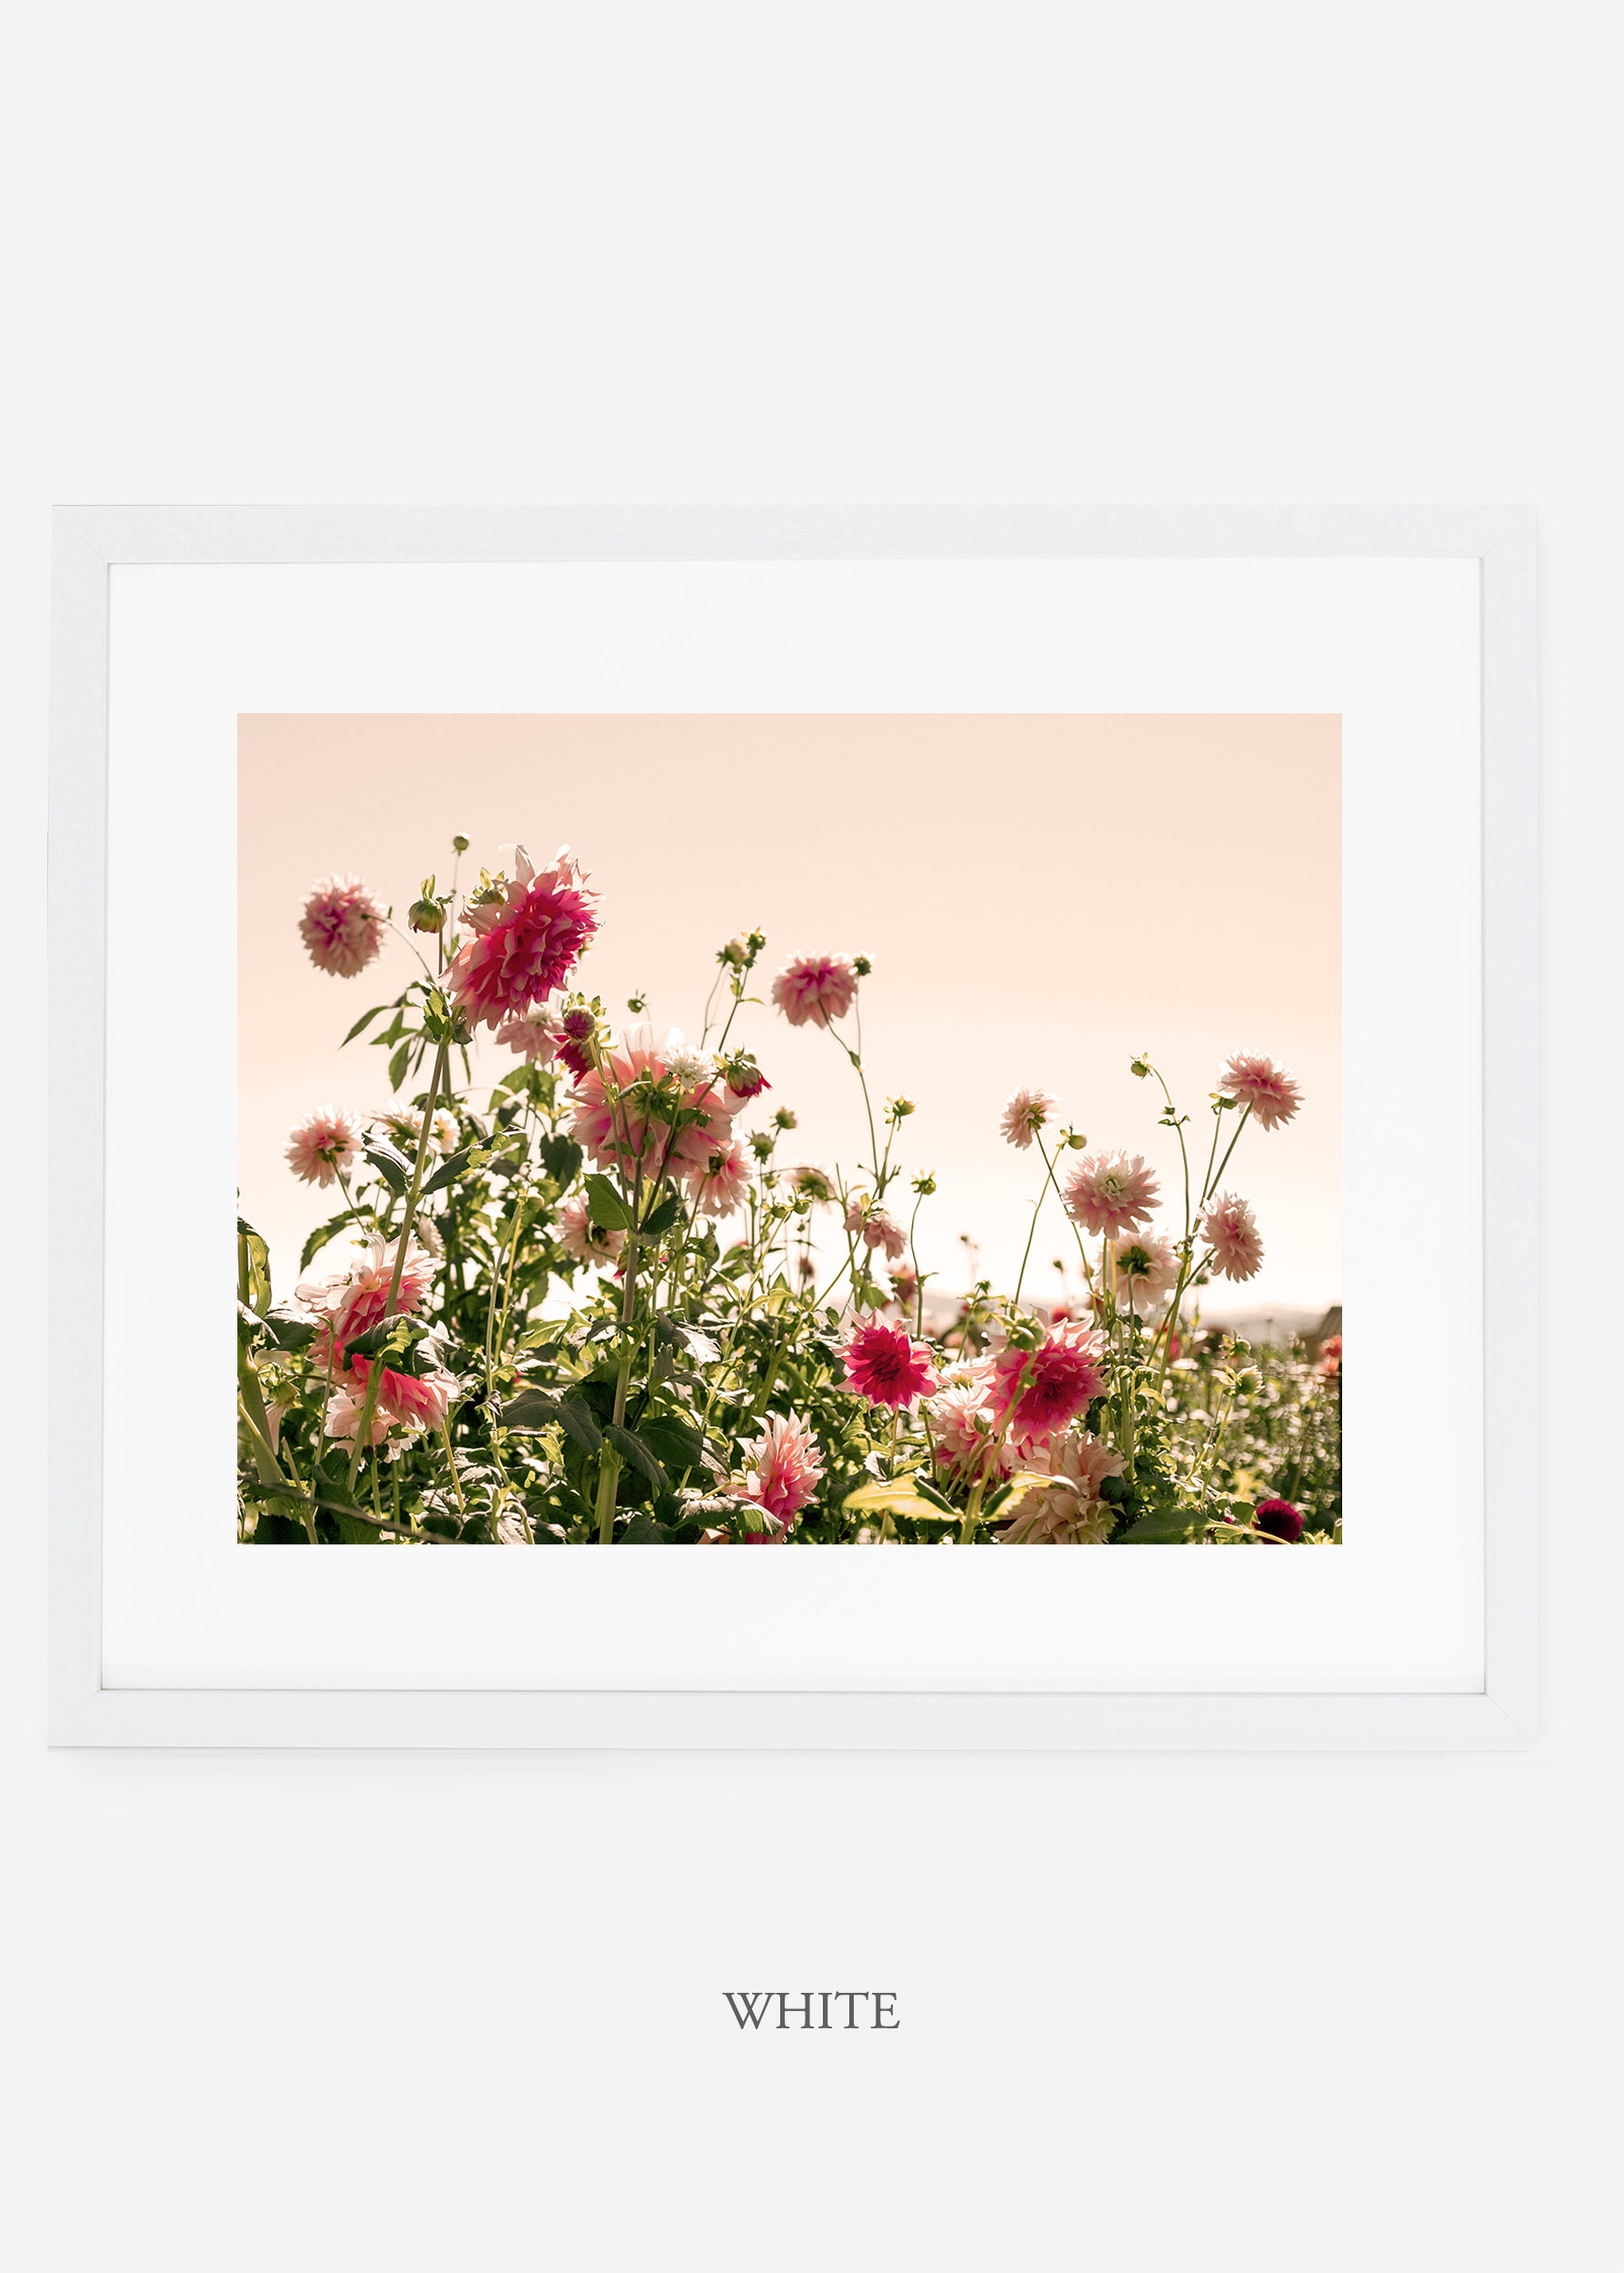 wilder-california-whiteframe-dahlia-7-minimal-botanical-print-art-interior-design.jpg